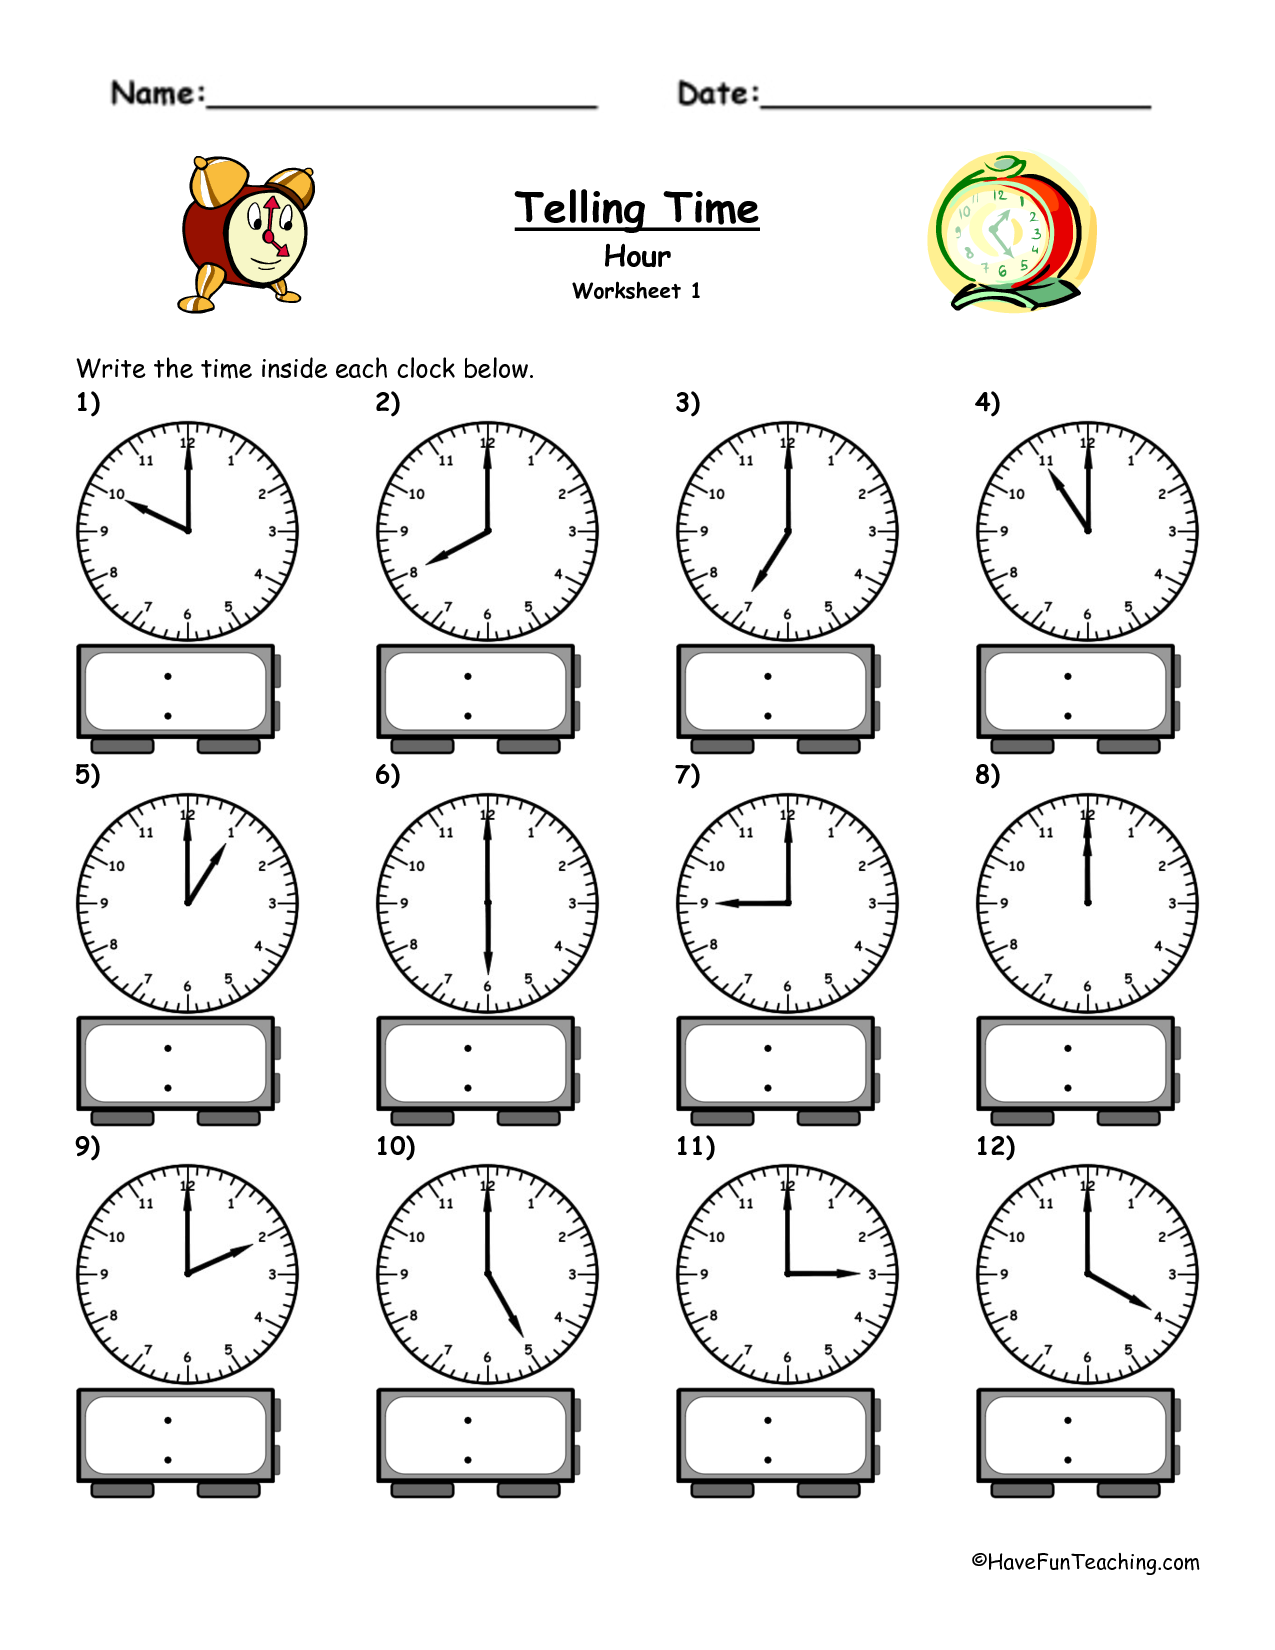 Worksheets Worksheets For Telling Time telling and writing time worksheets worksheets